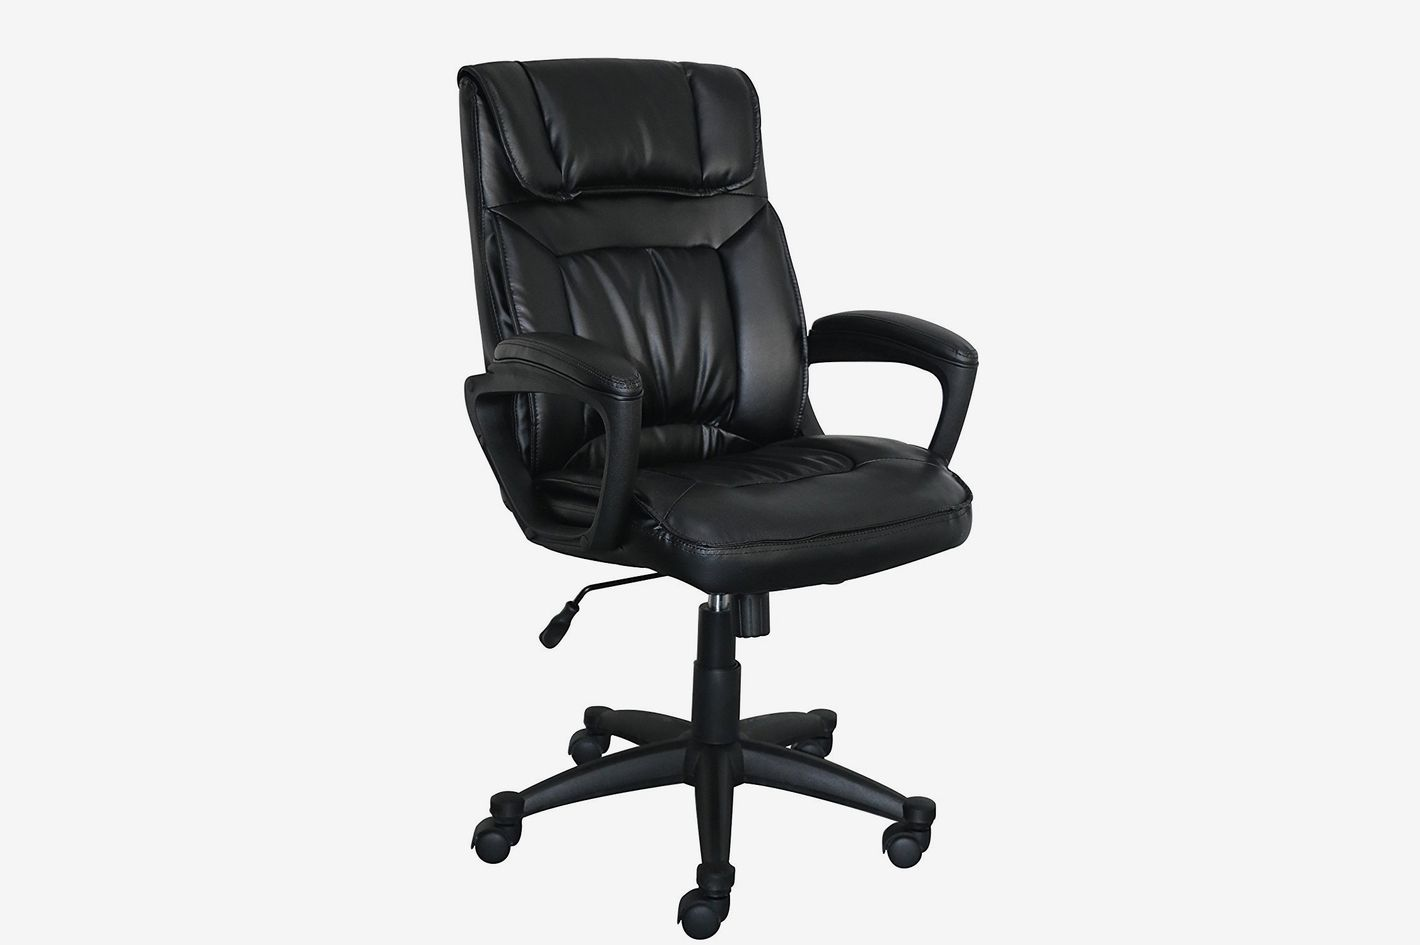 serta black leather best office chair under $200 : cheap black leather chairs - Cheerinfomania.Com